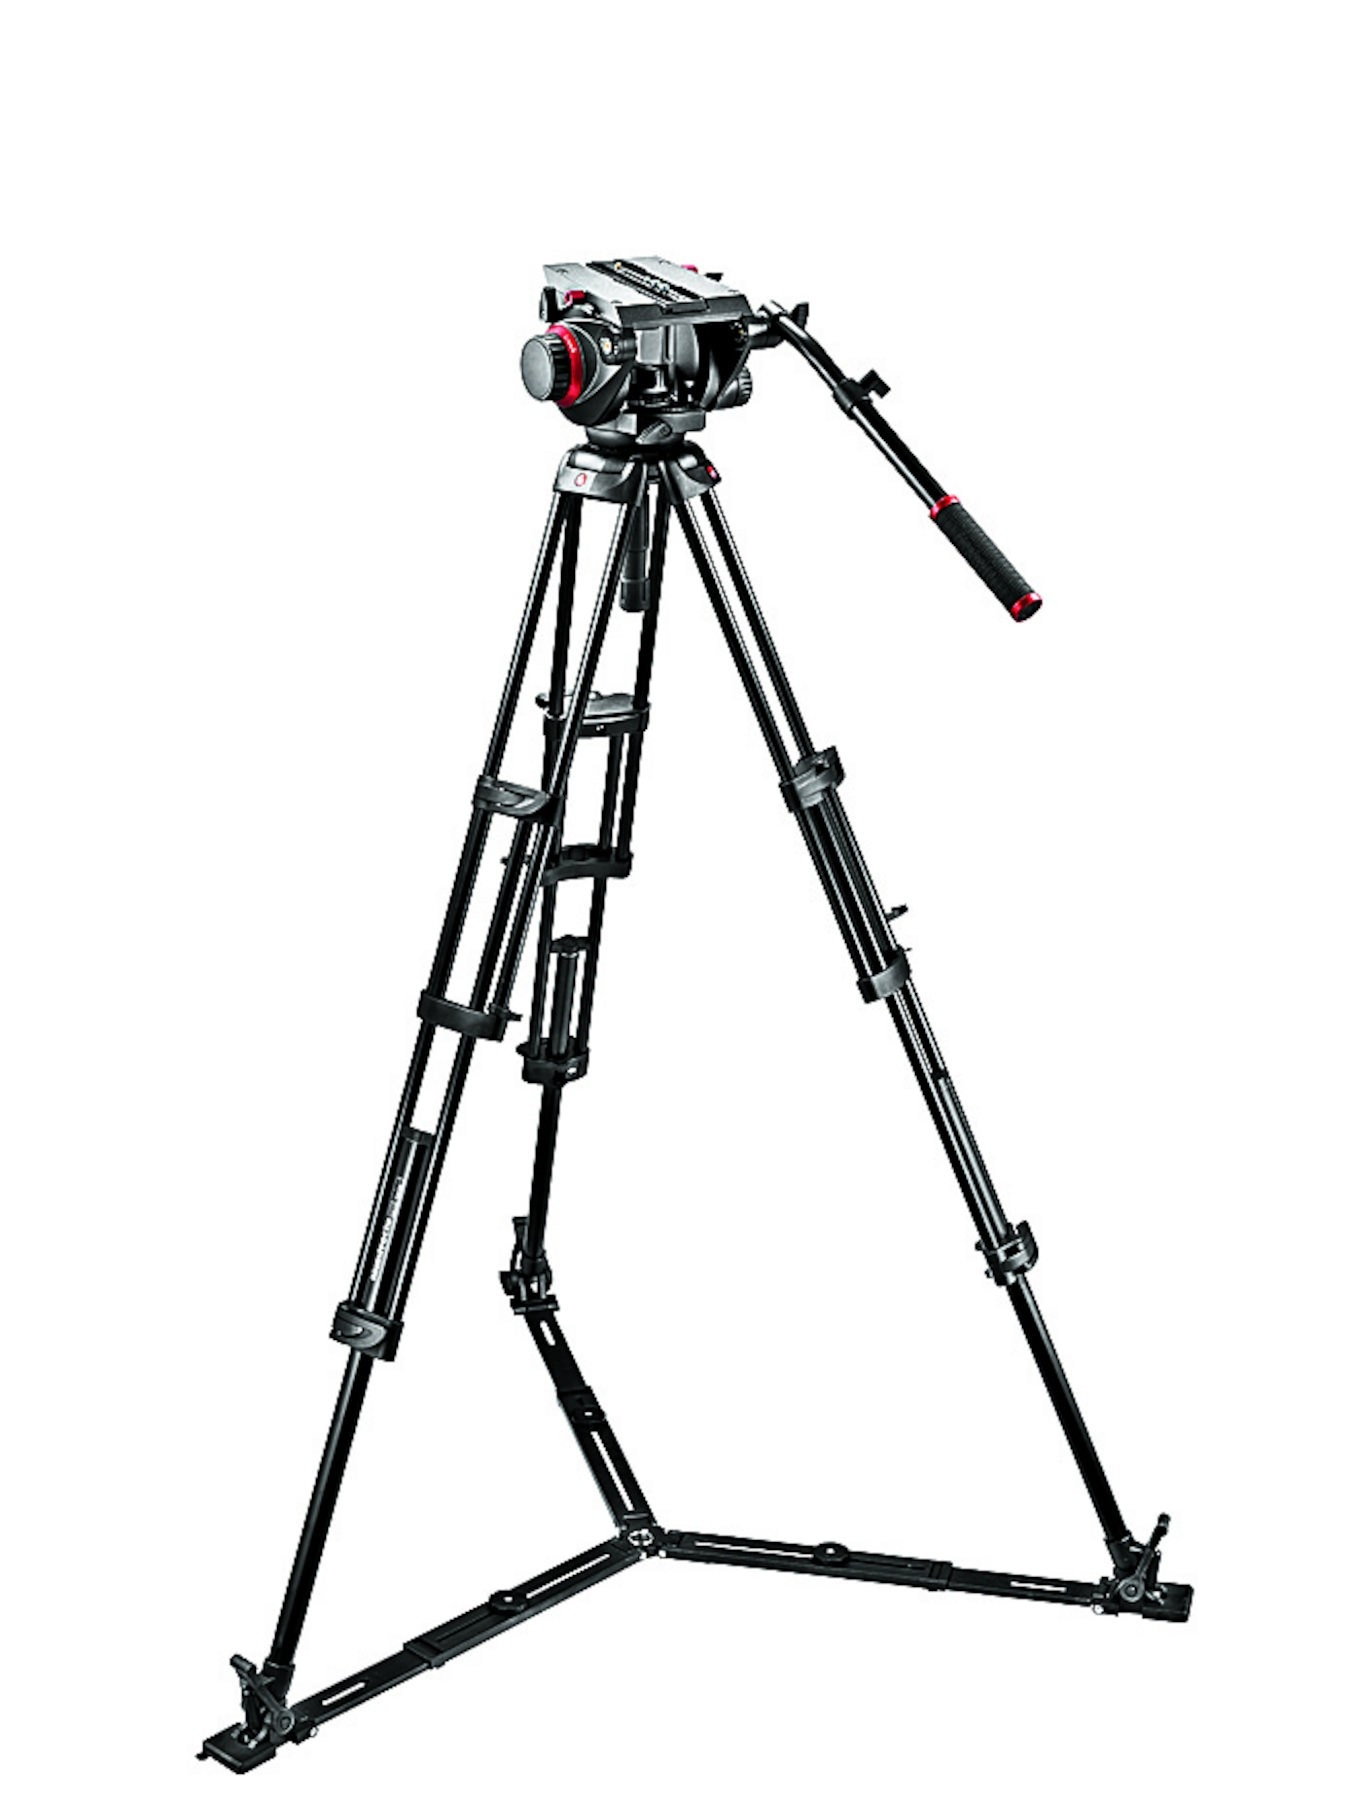 TRIPIE P/VIDEO CON CABEZA 509HD PARA 13.5KG (509HD,545GBK)